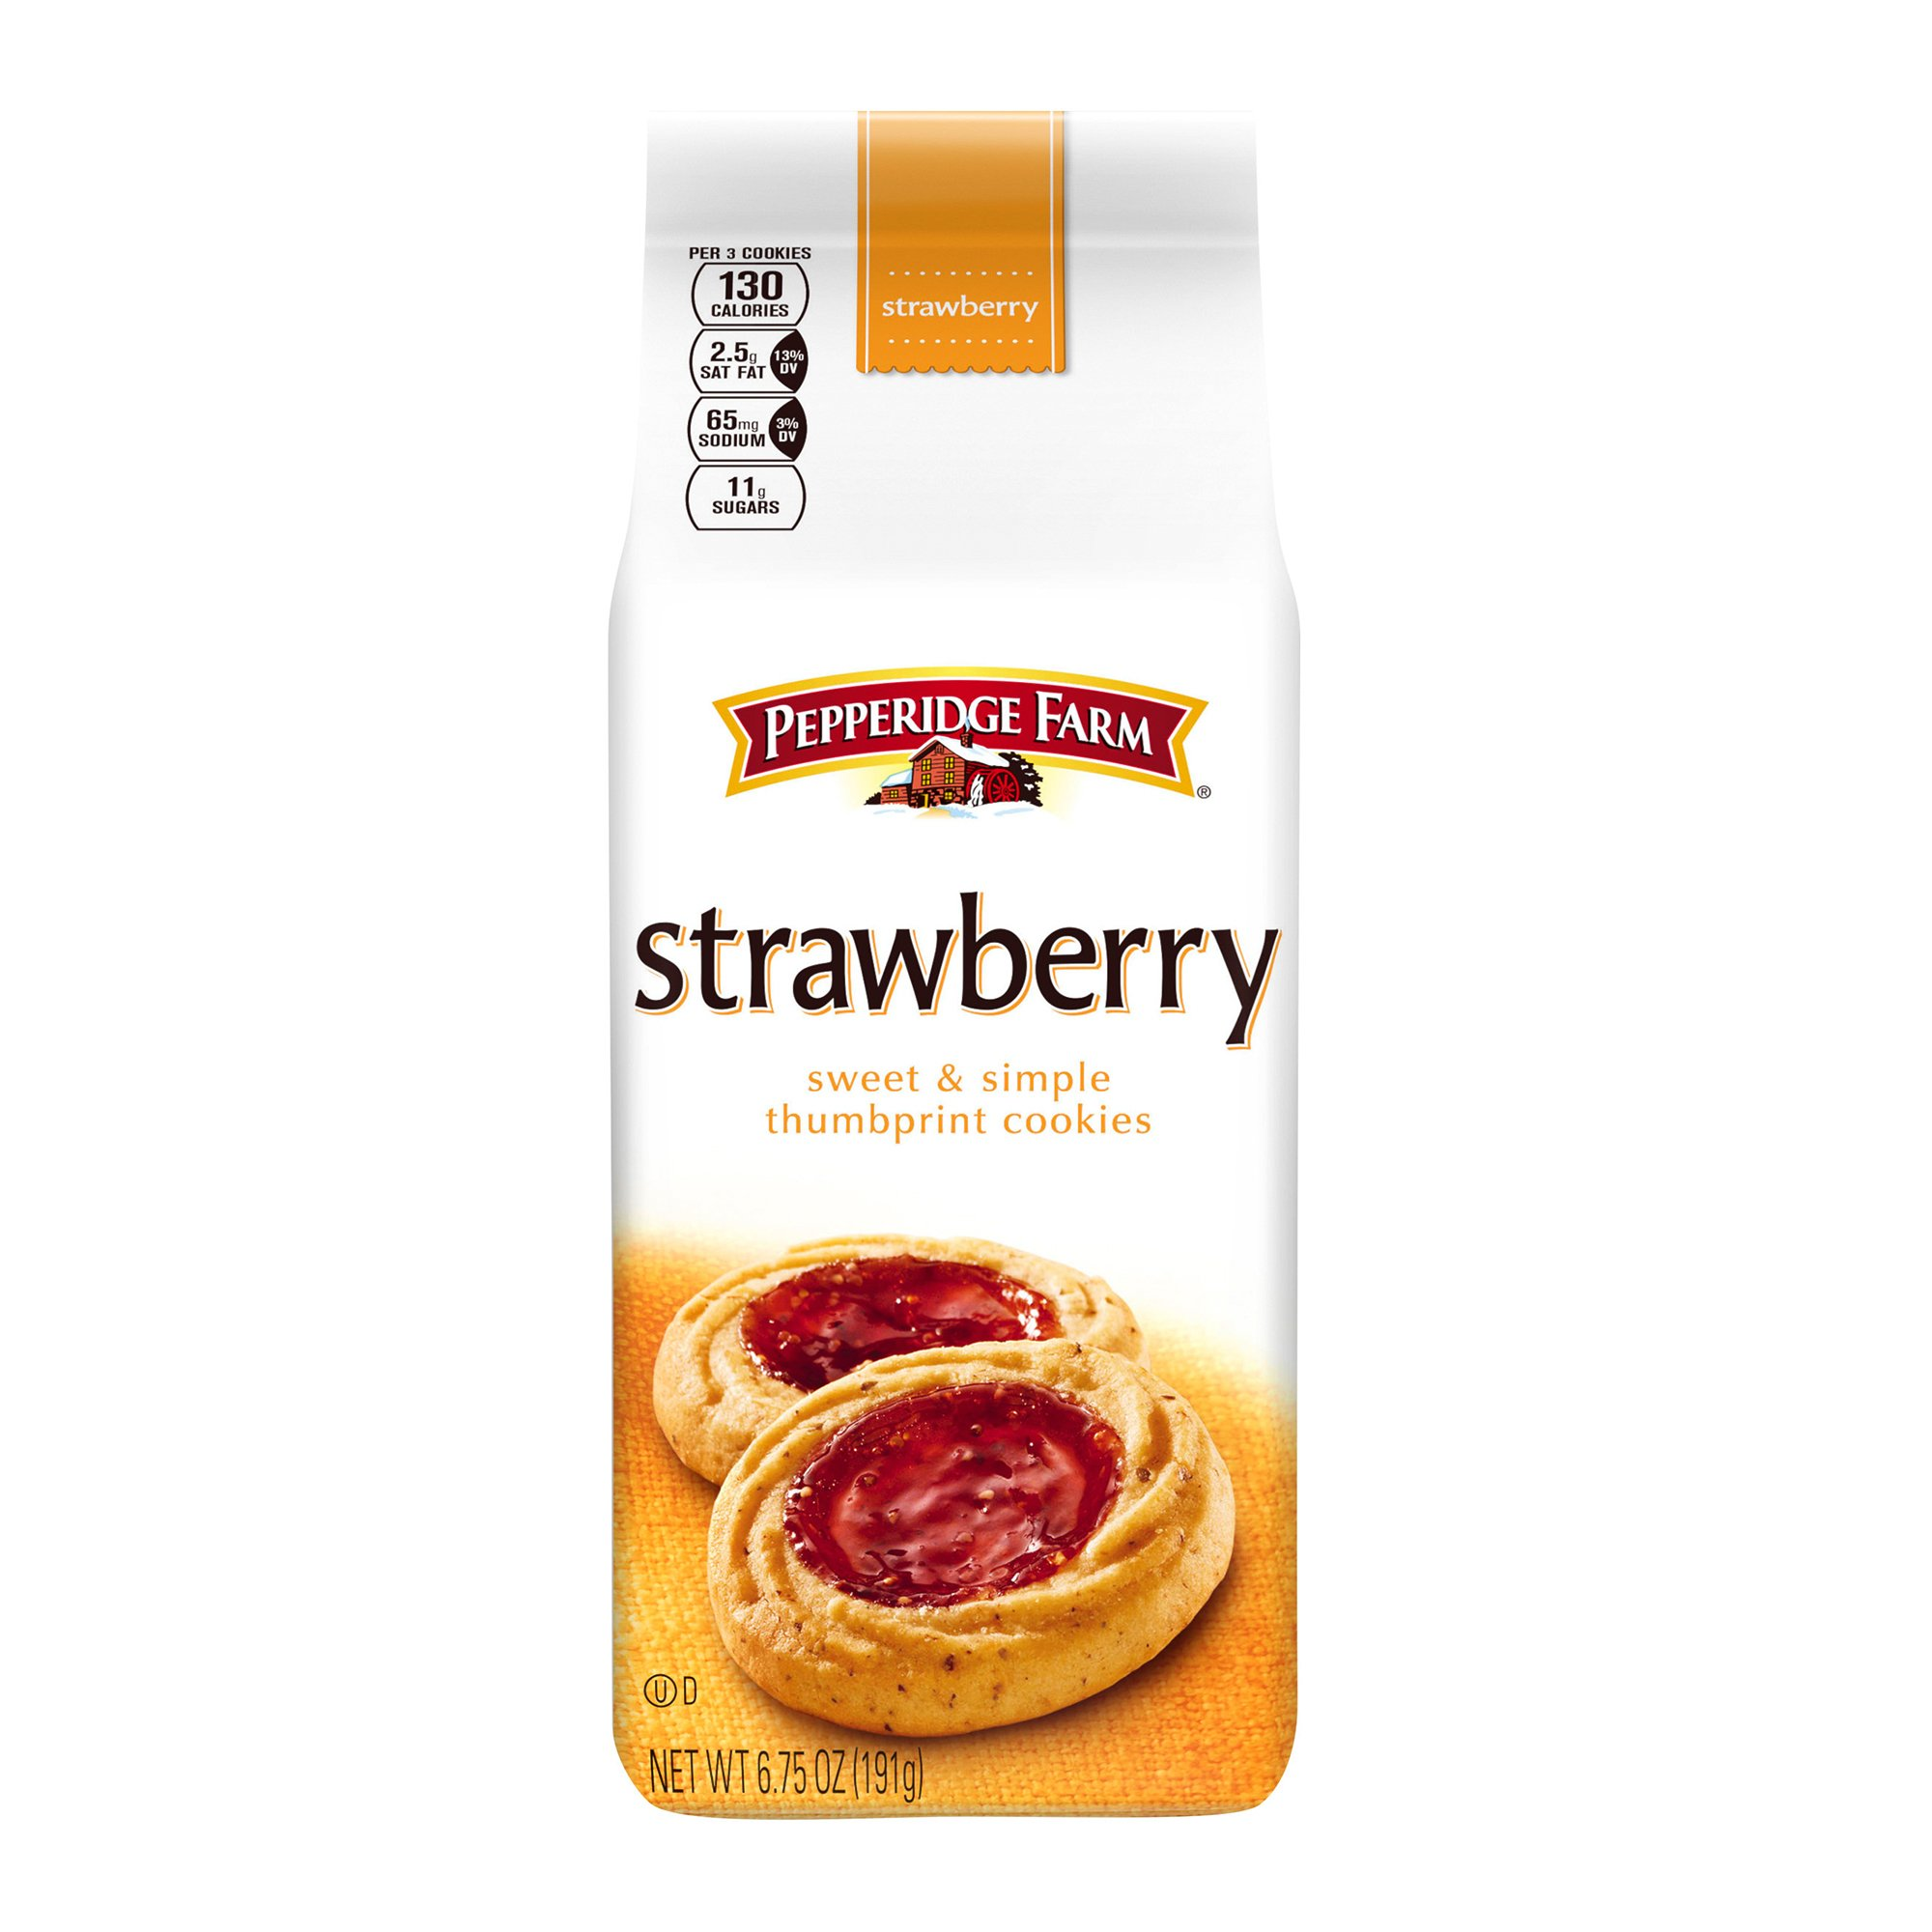 Pepperidge Farm Strawberry Thumbprint Cookies, 6.75 Ounce by Pepperidge Farm